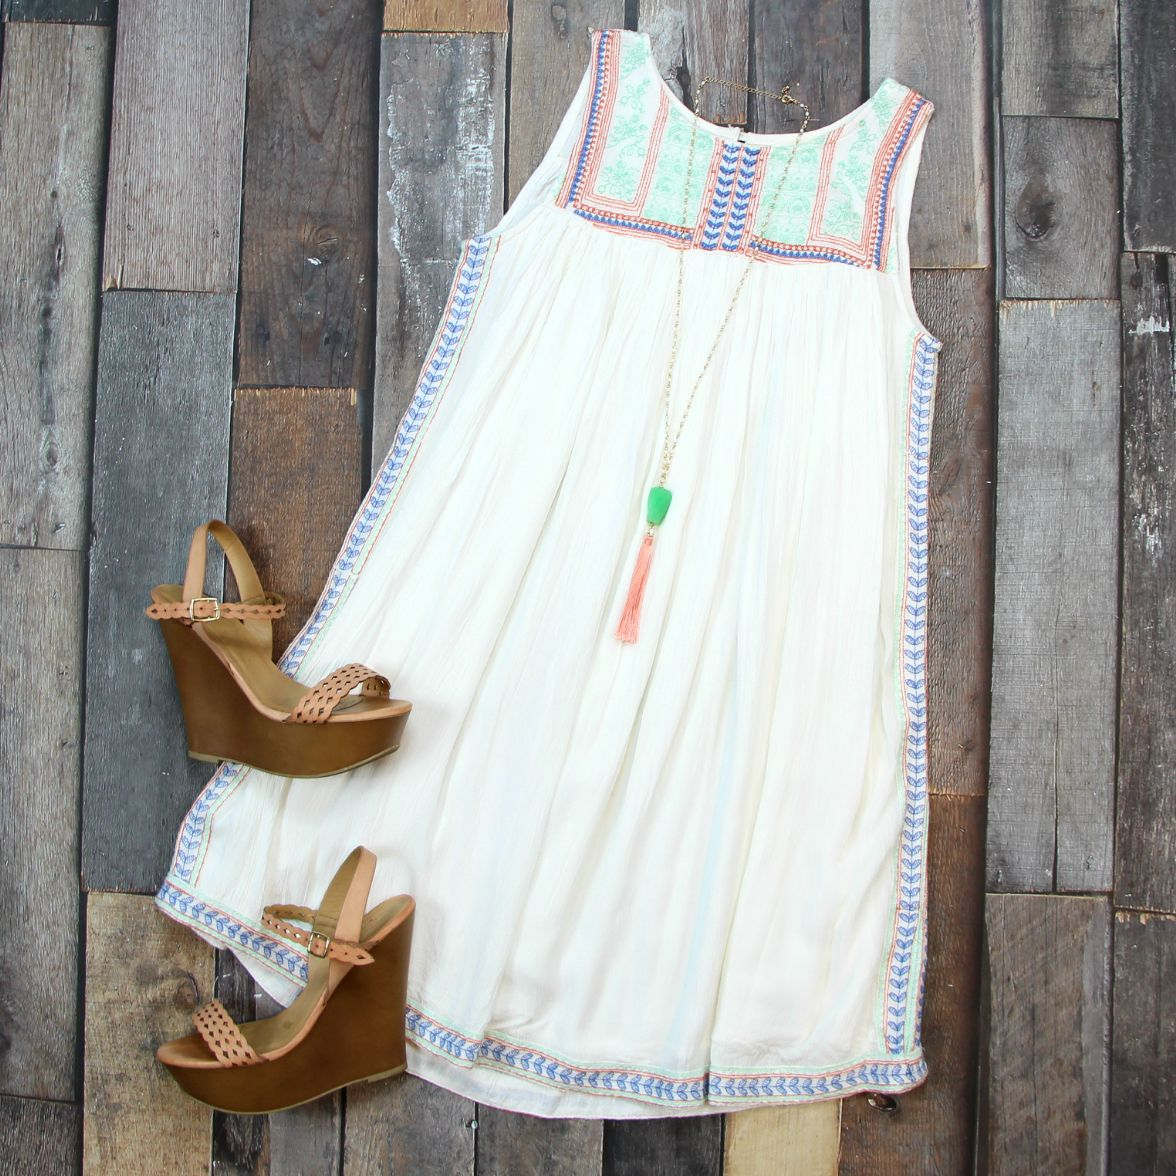 Our new Bohemian Embroidered Sundress in Ivory is EVERYTHING! Seriously OBSESSED! Shop EVERYTHING $42 or LESS!